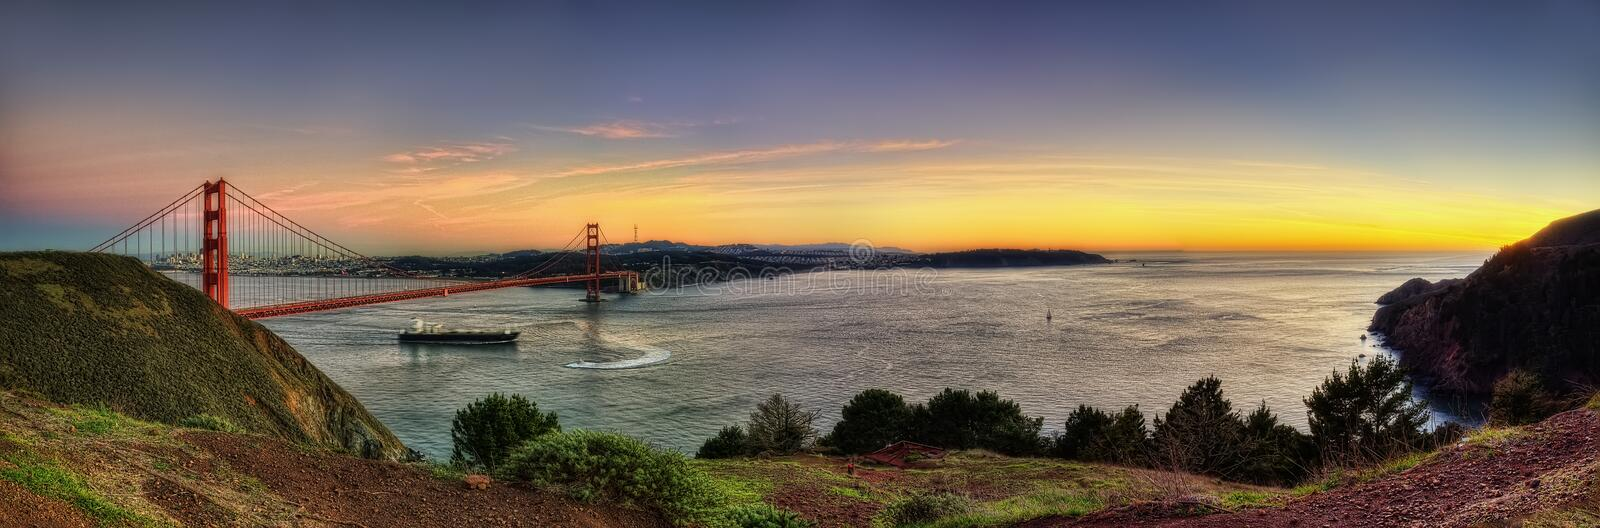 Golden Gate USA stock photography